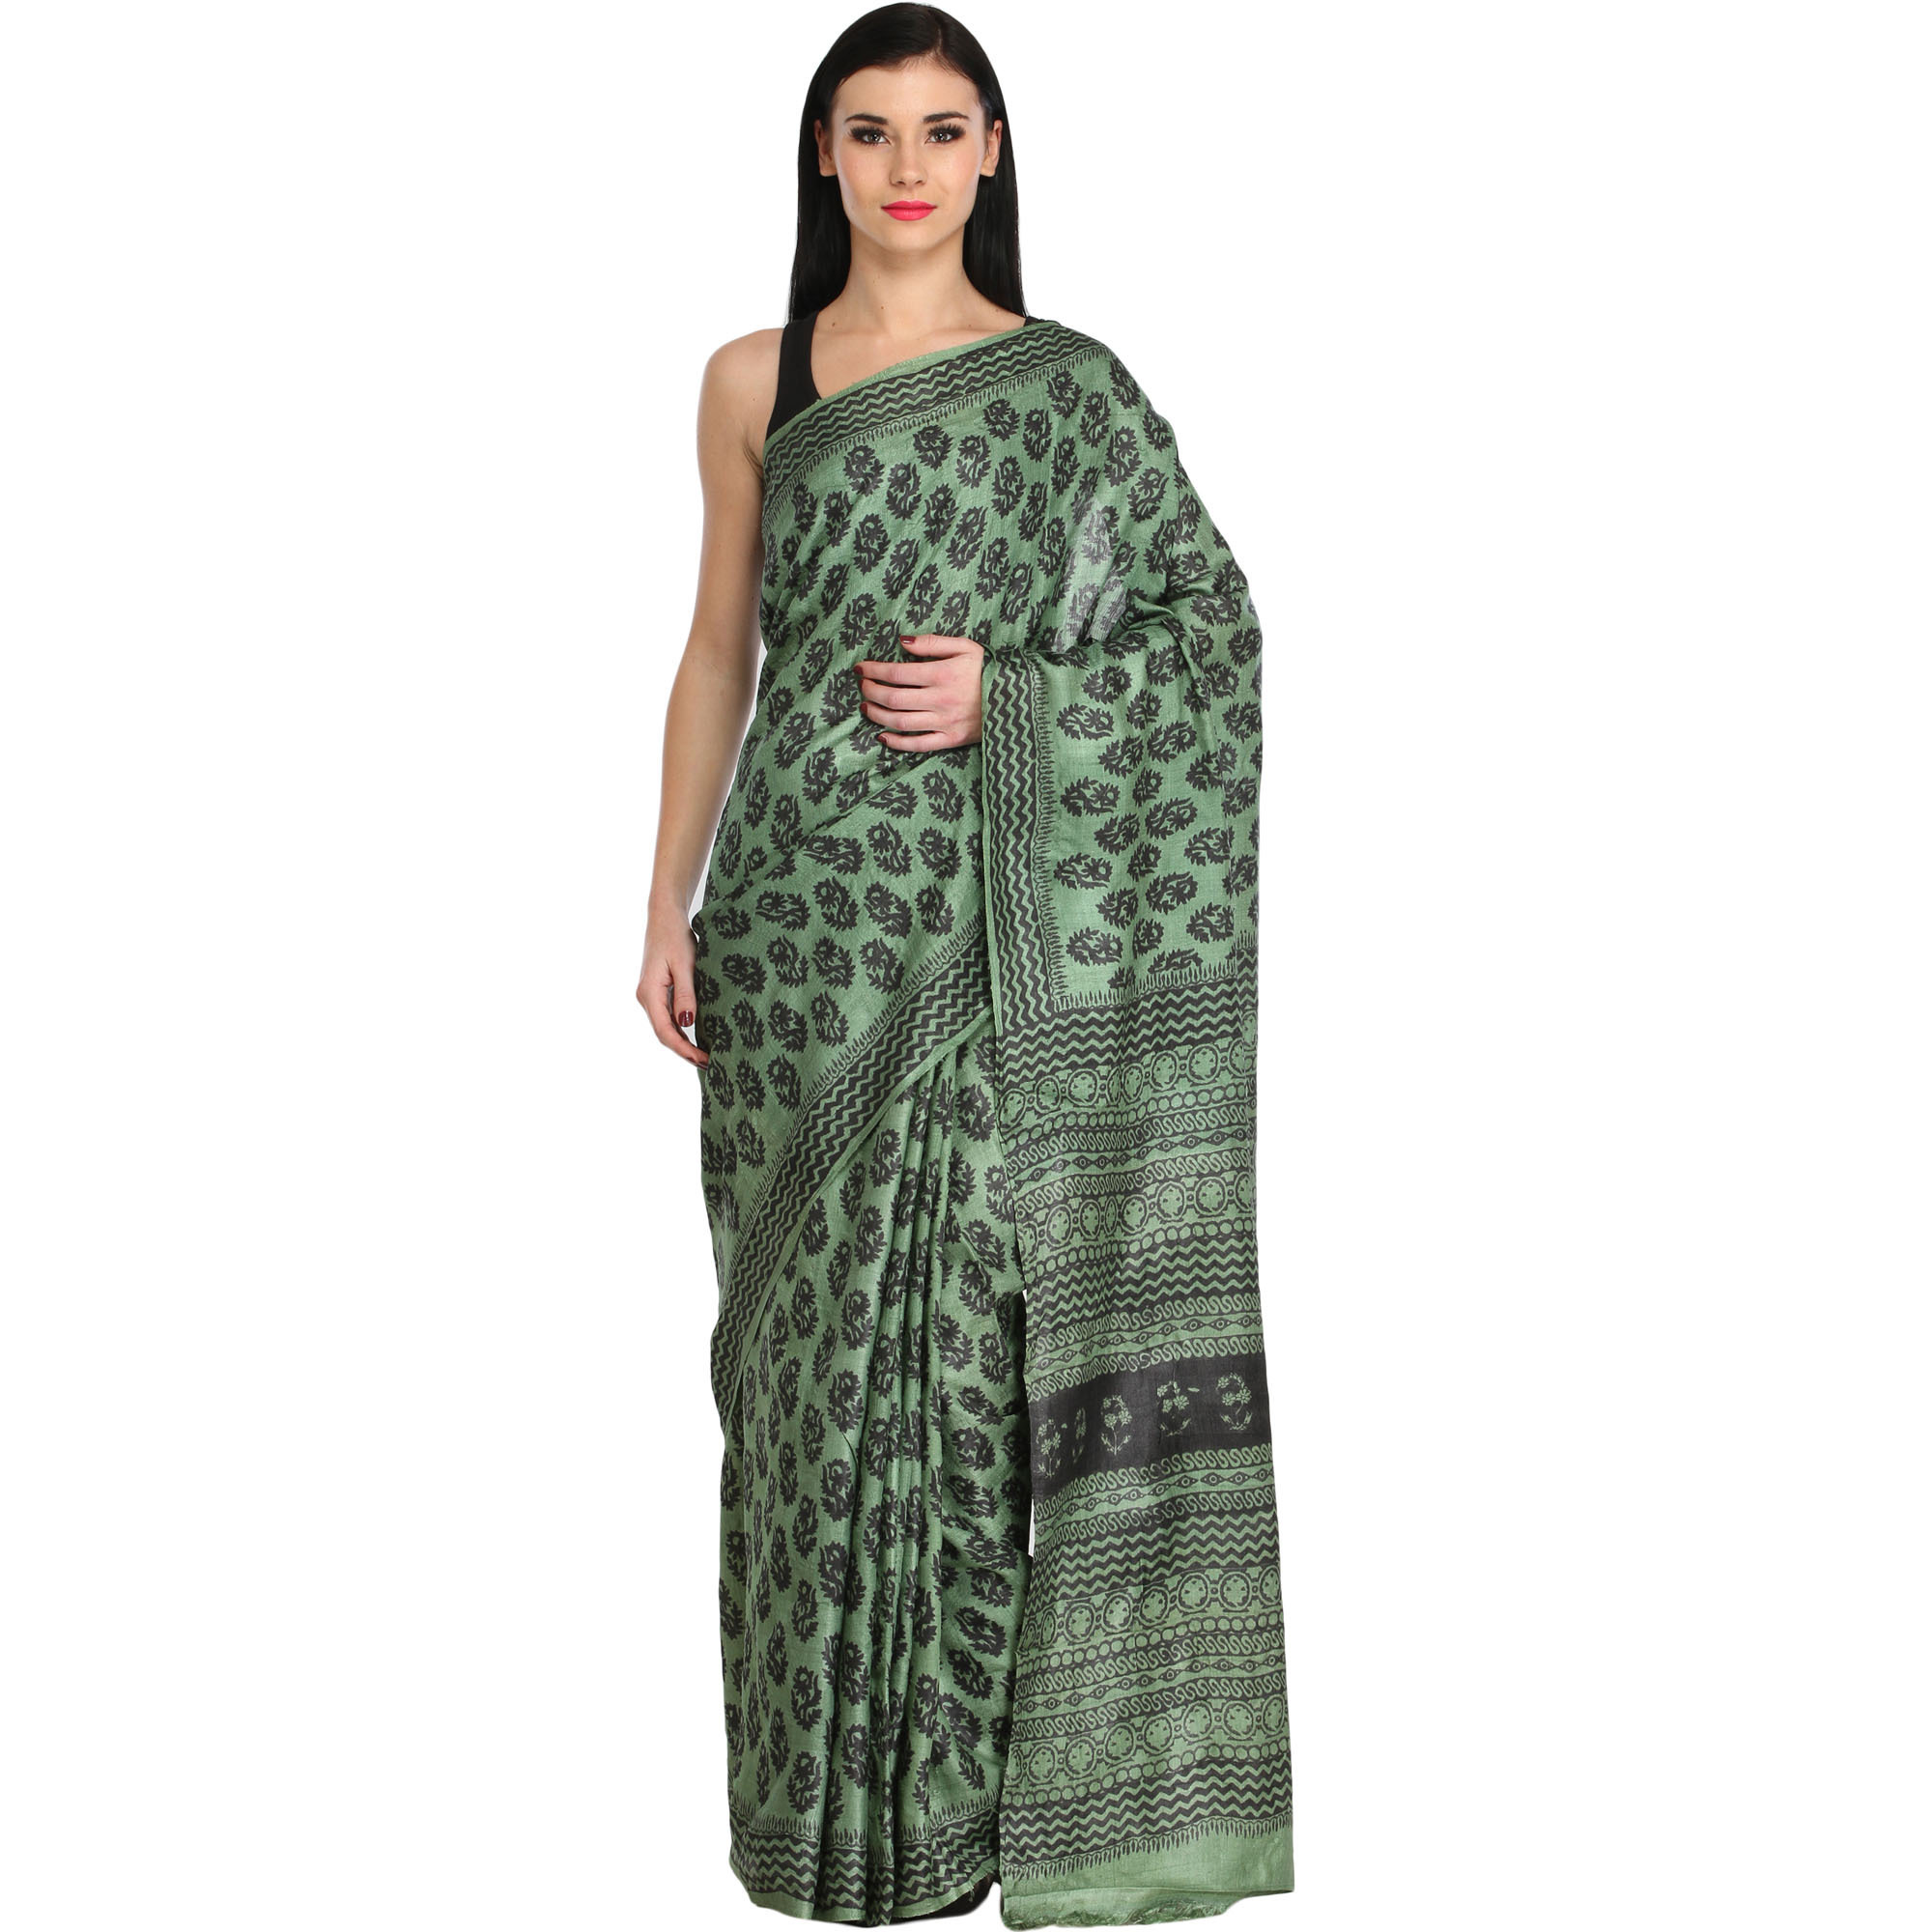 Mineral-Green Sari with Block Printed Bootis and Zigzag Border